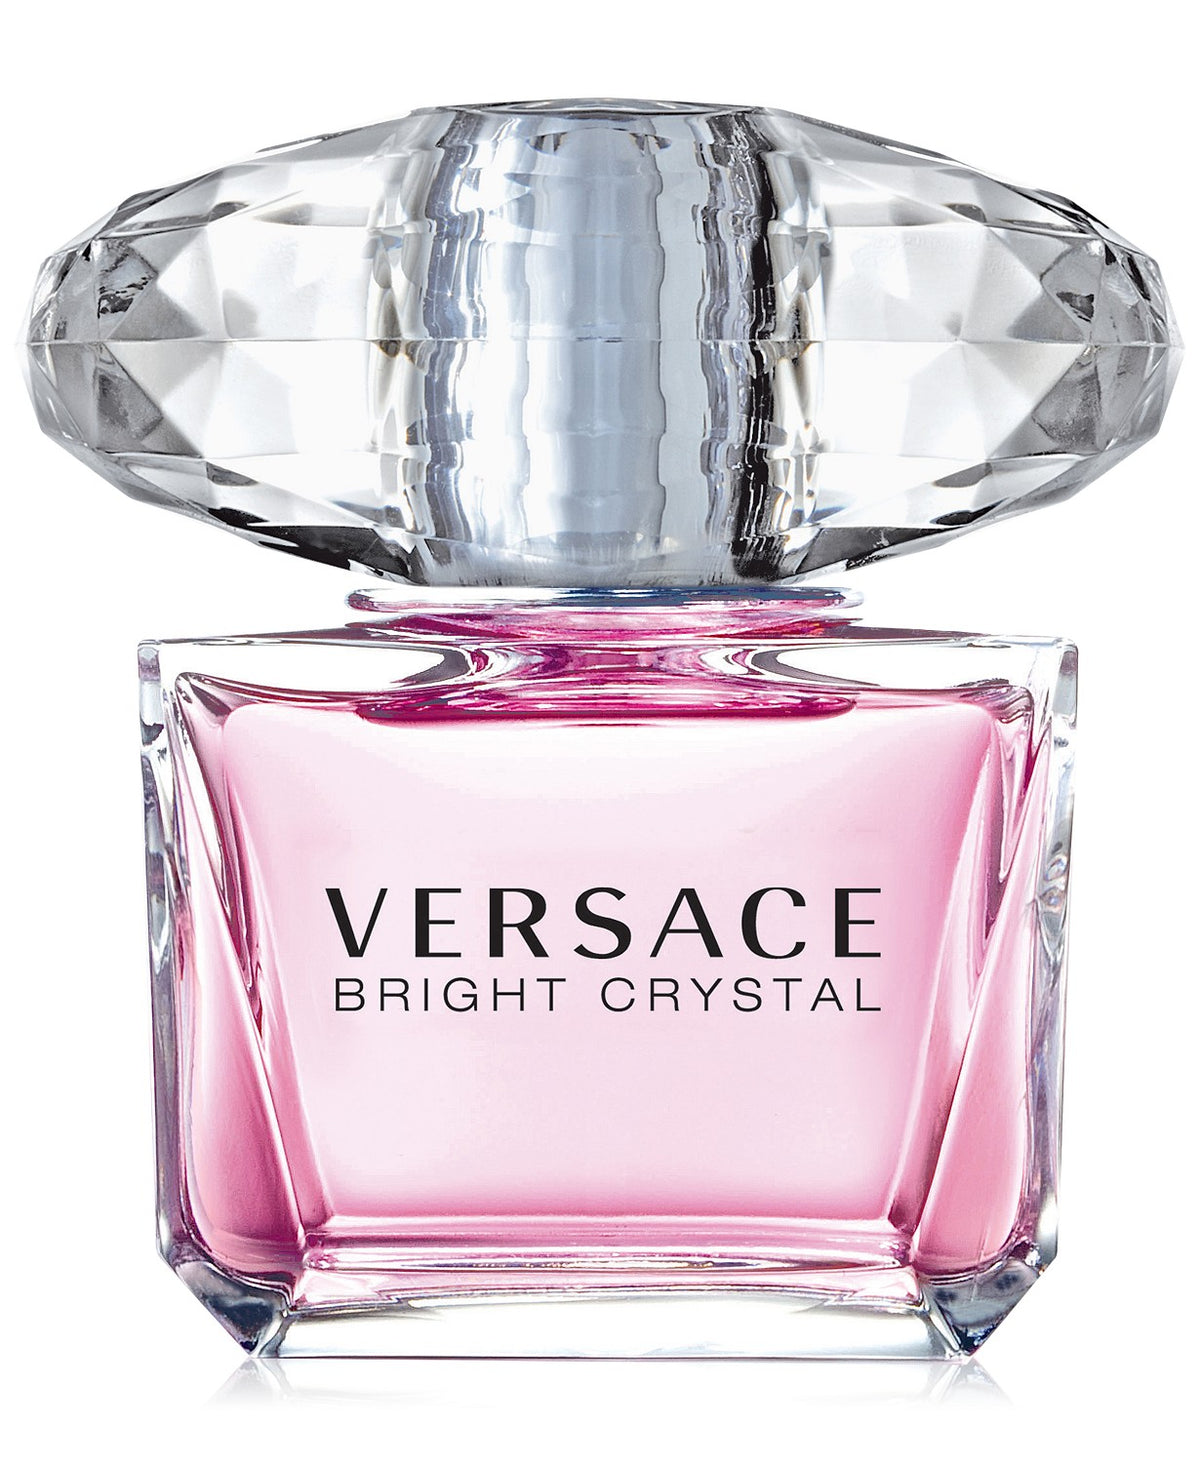 VERSACE Bright Crystal SIZE 3 oz/ 90 mL